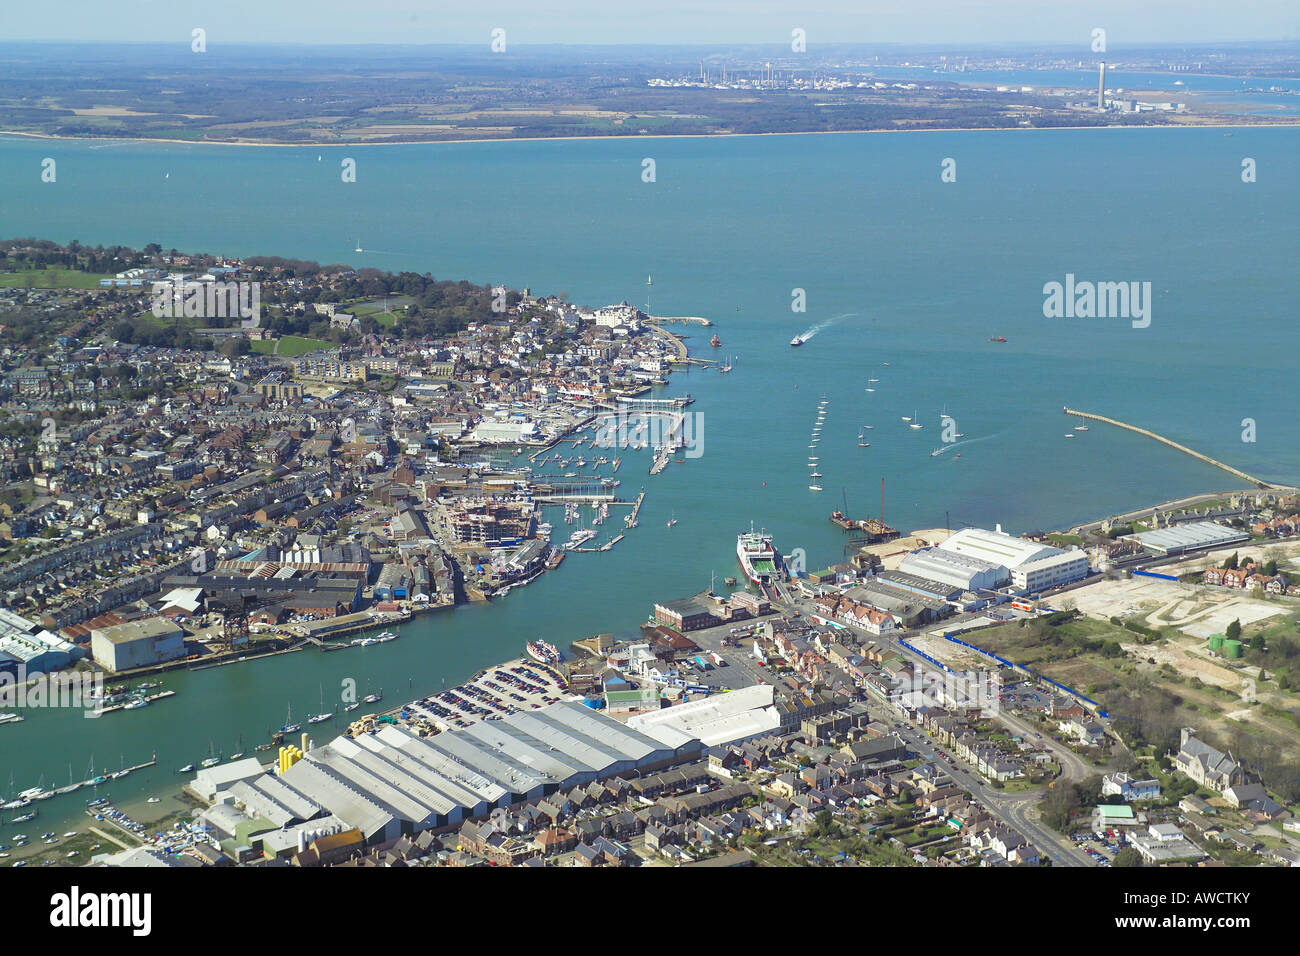 Panoramic aerial view of Cowes & East Cowes on the Isle of Wight featuring the ferry terminal, boat yards & the Stock Photo